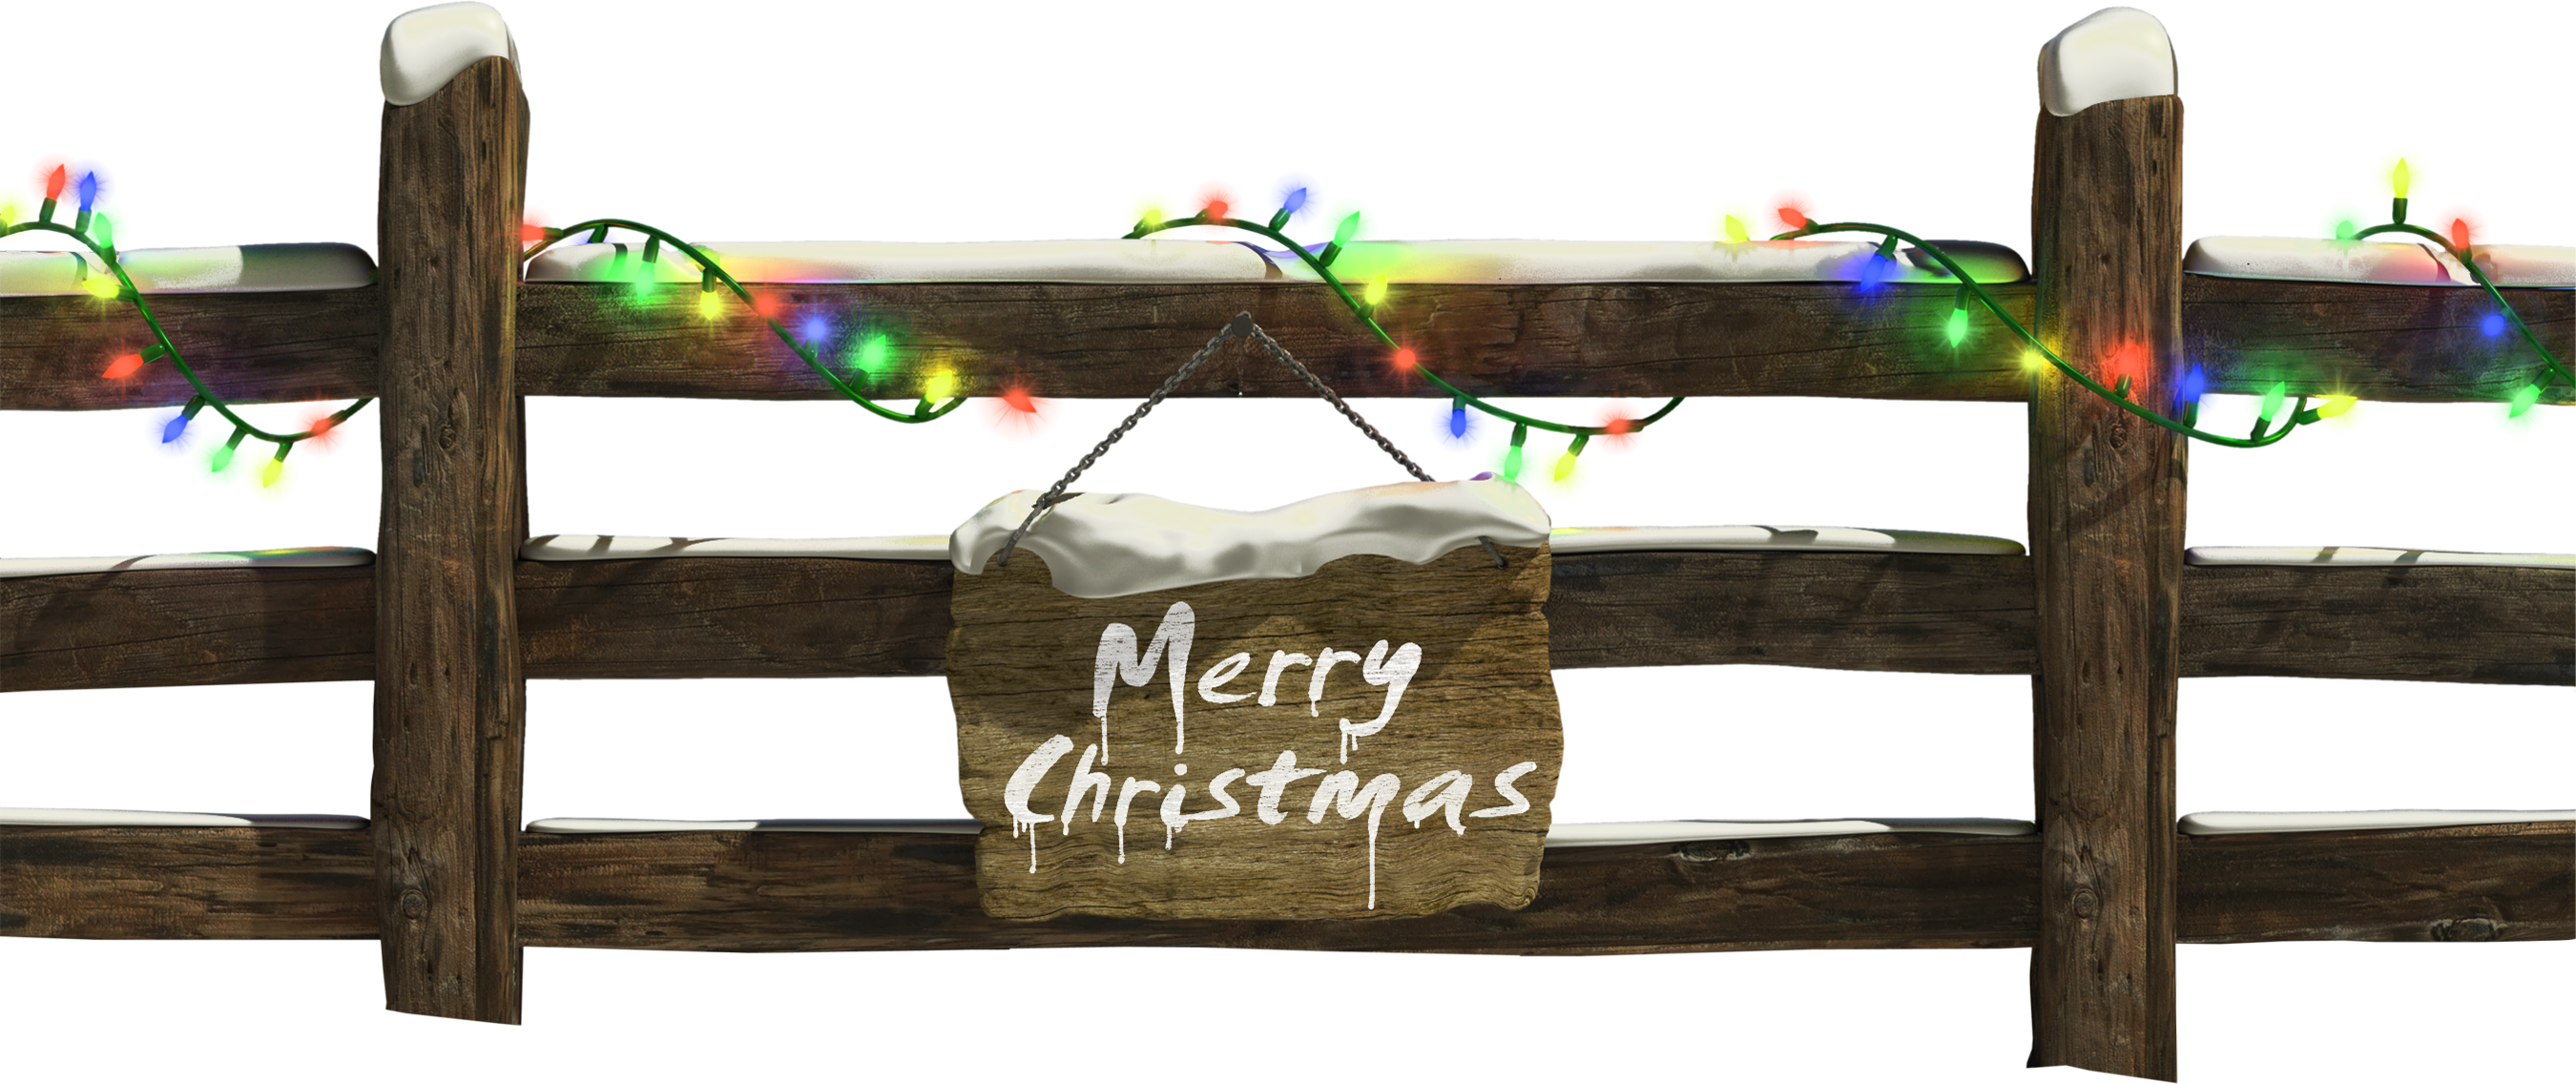 Christmas Fence with Lights Clipart.